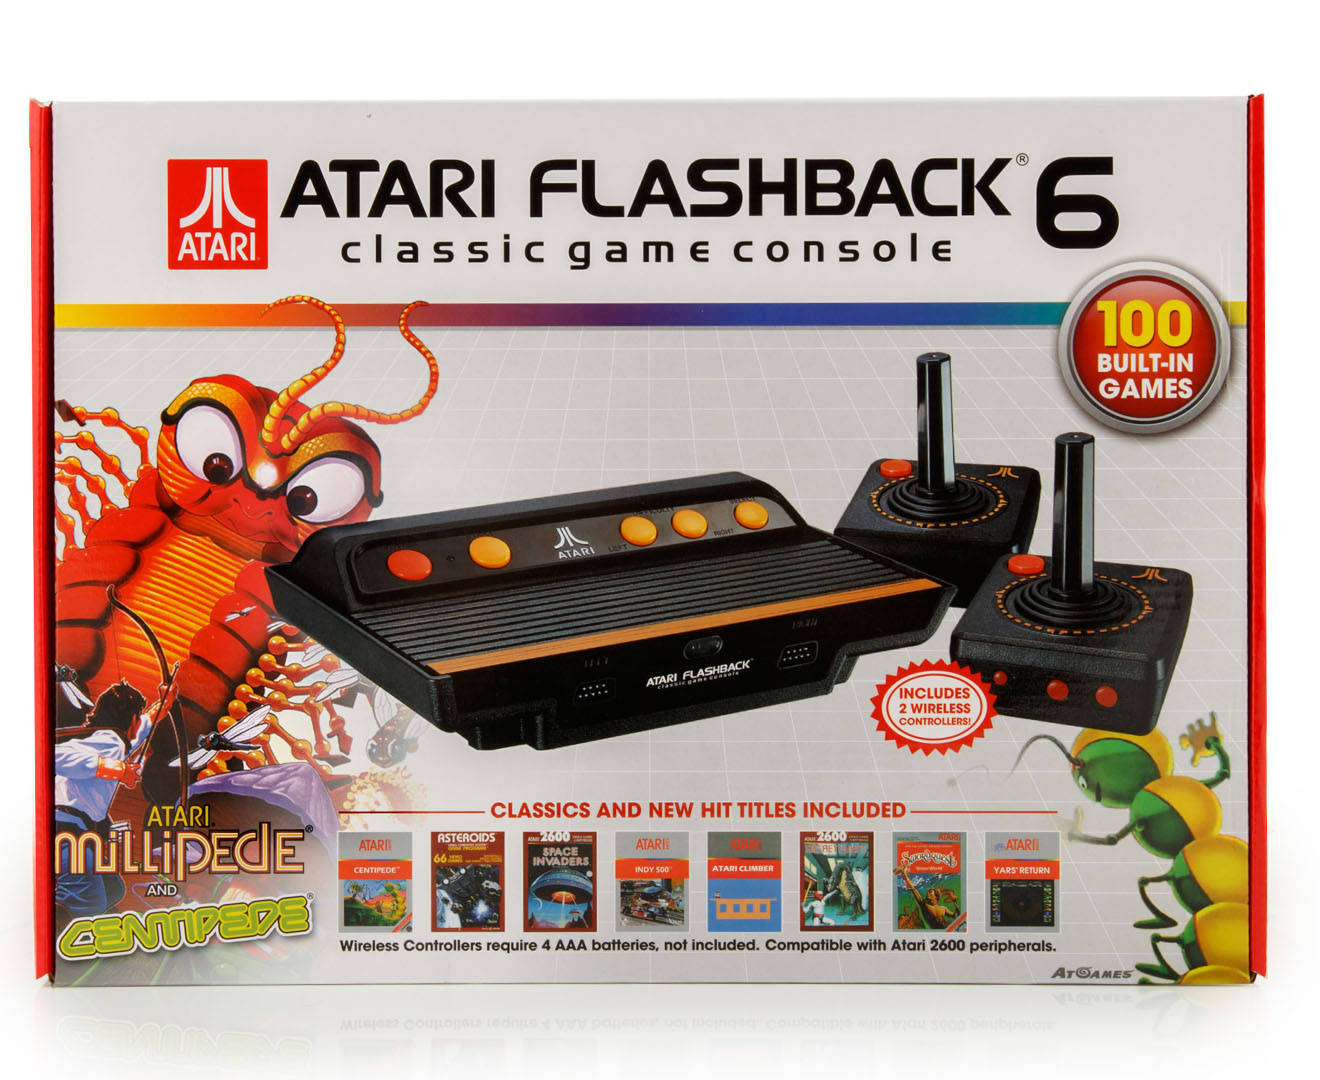 Atari flashback 6 classic game console 100 built in games picclick au - Atari flashback 3 classic game console ...